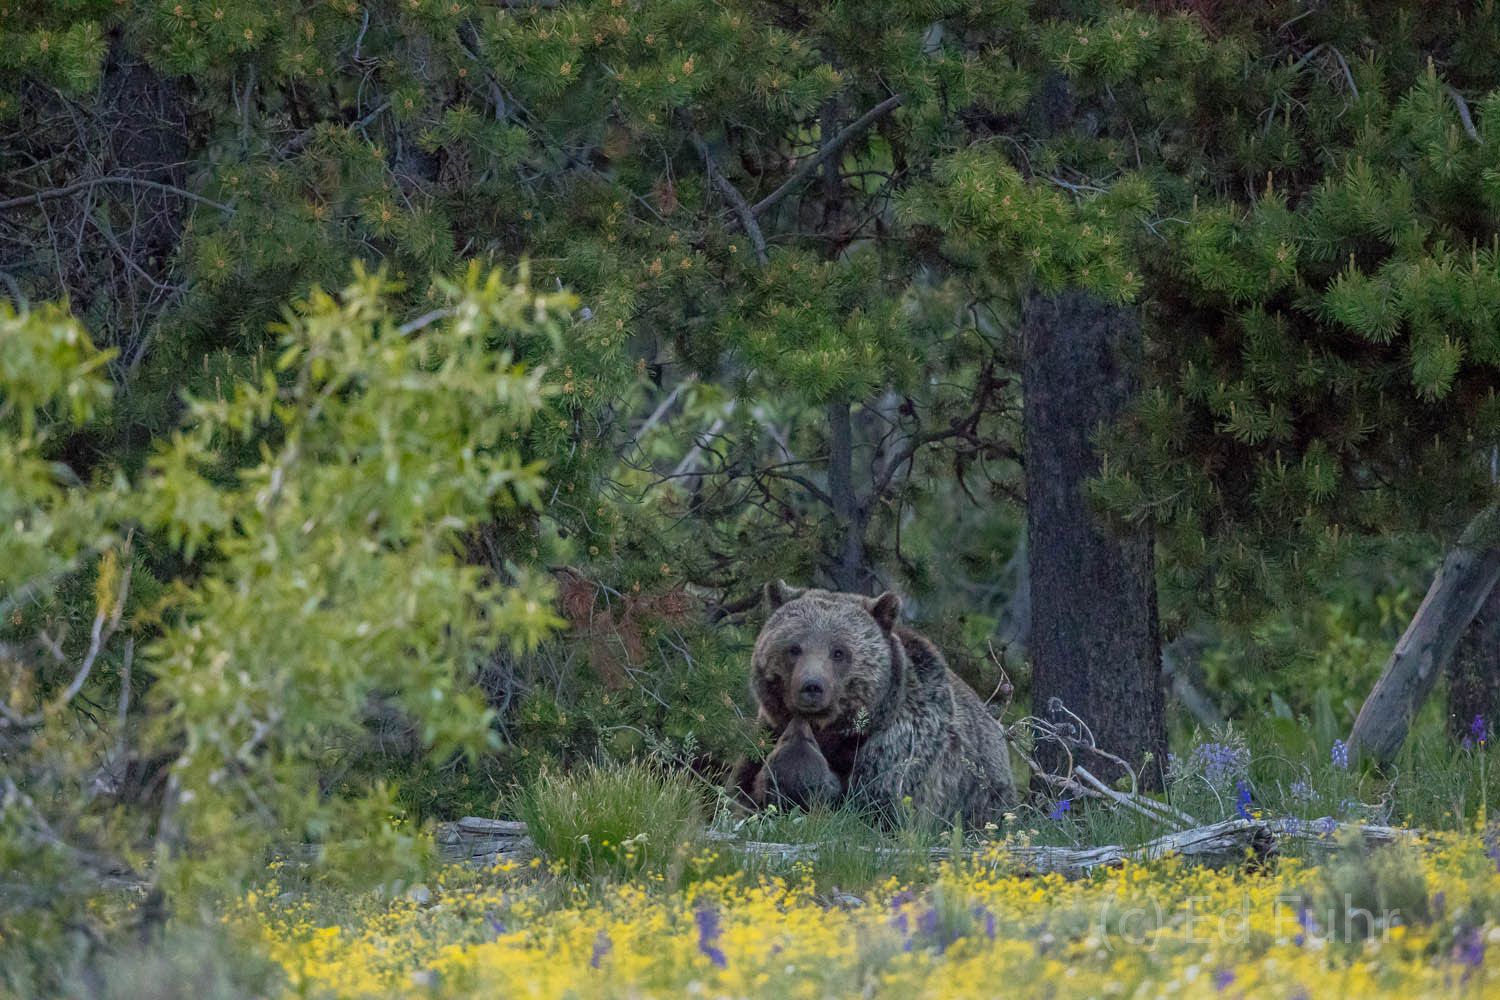 Grizzly bear, Blondie, retreats with her cubs to the woodland edge where she will spend much of the day, nursing, napping and...